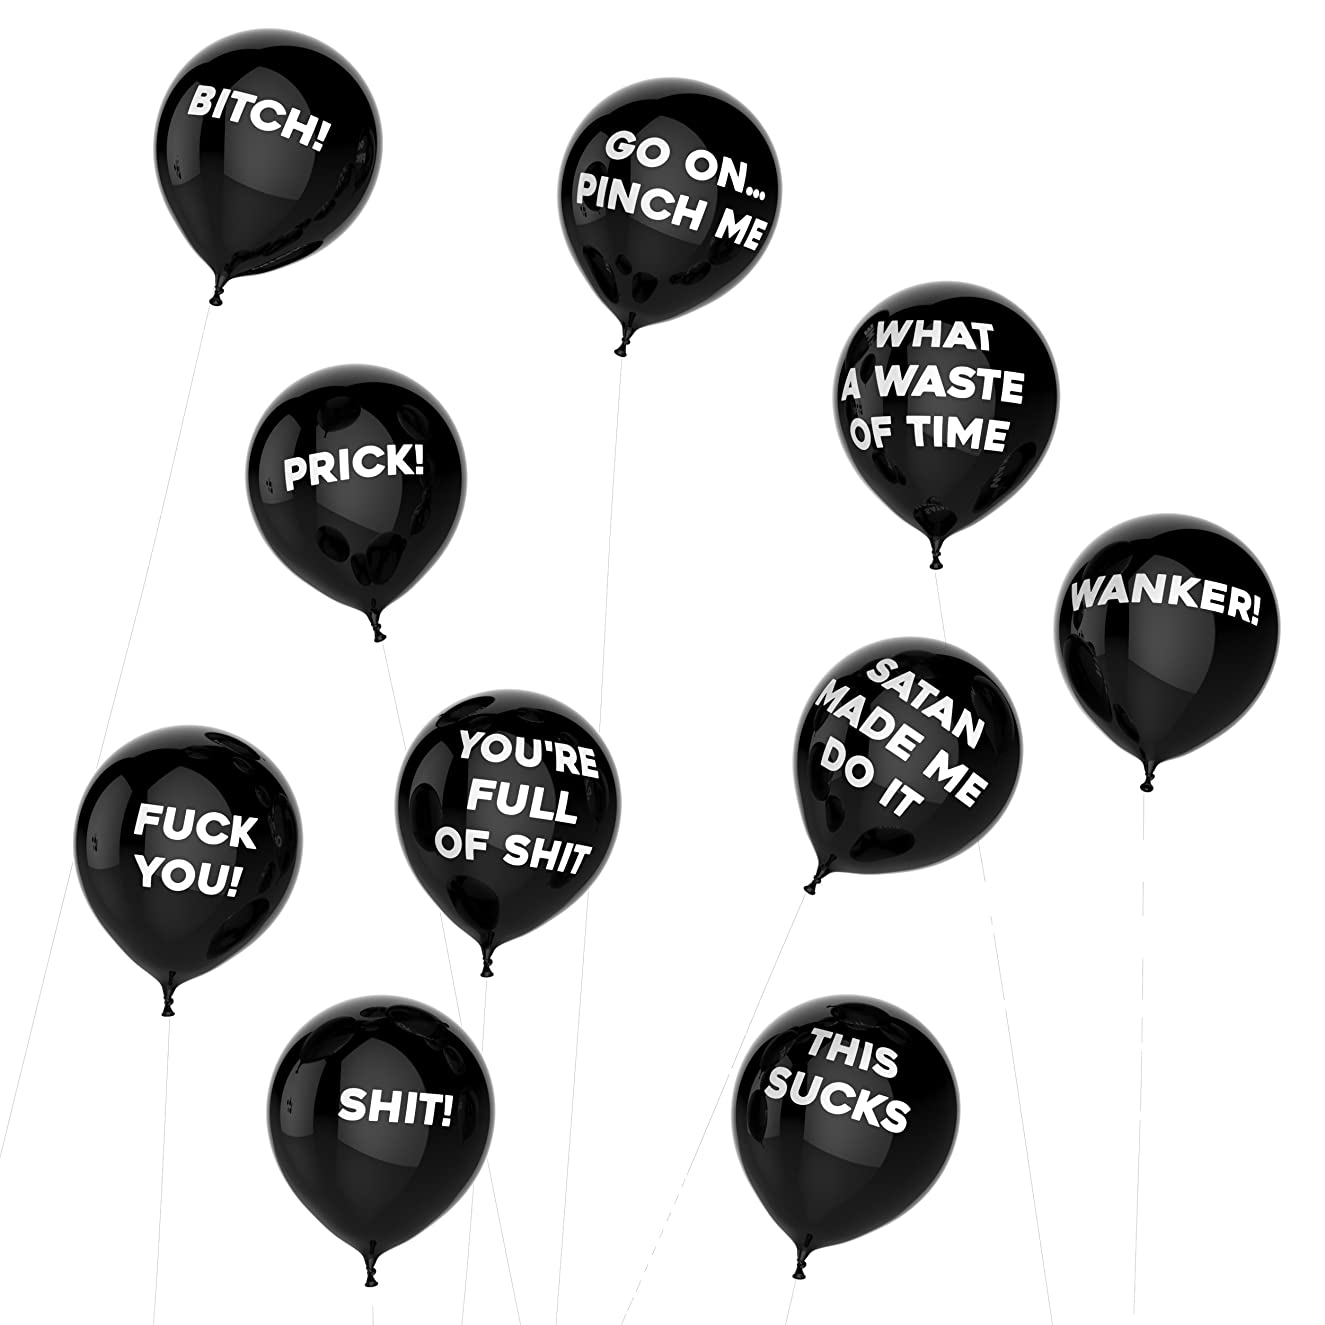 Thick Air Balloons - Funny Adult Humour Balloons For Party 10-Pack - General Black